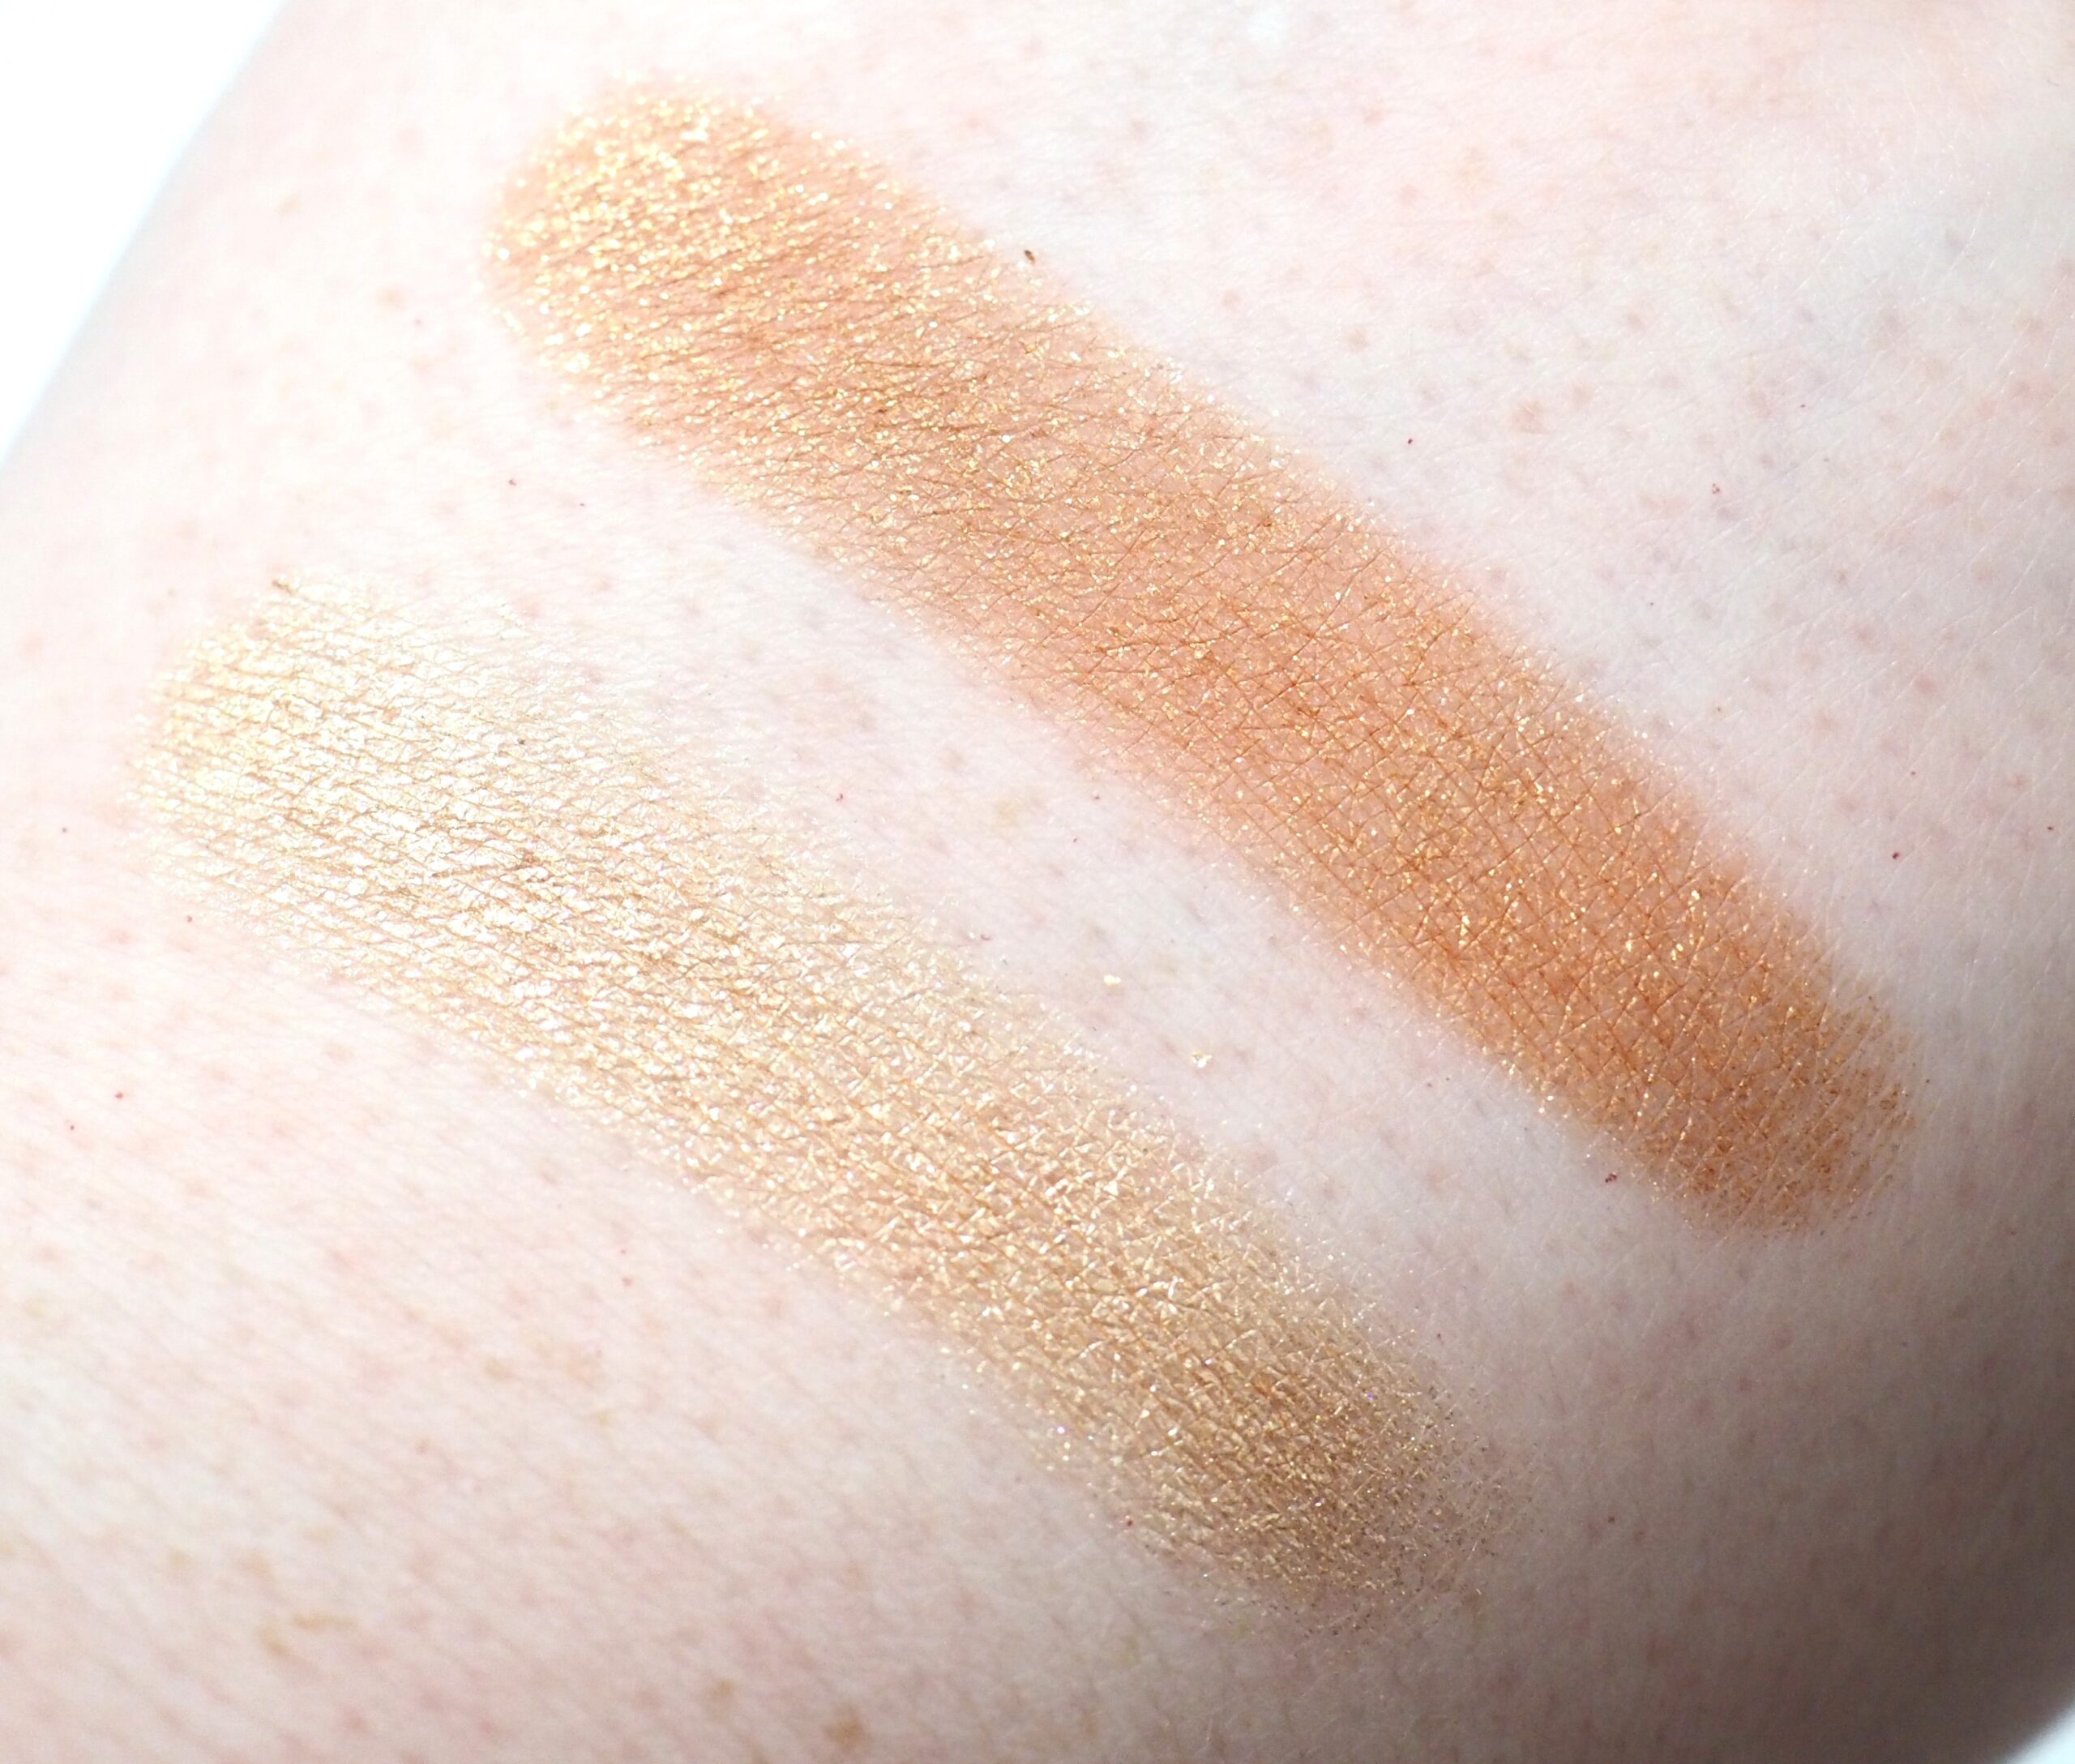 ColourPop State of Nature Super Shock Shadow Duo Review / Swatches